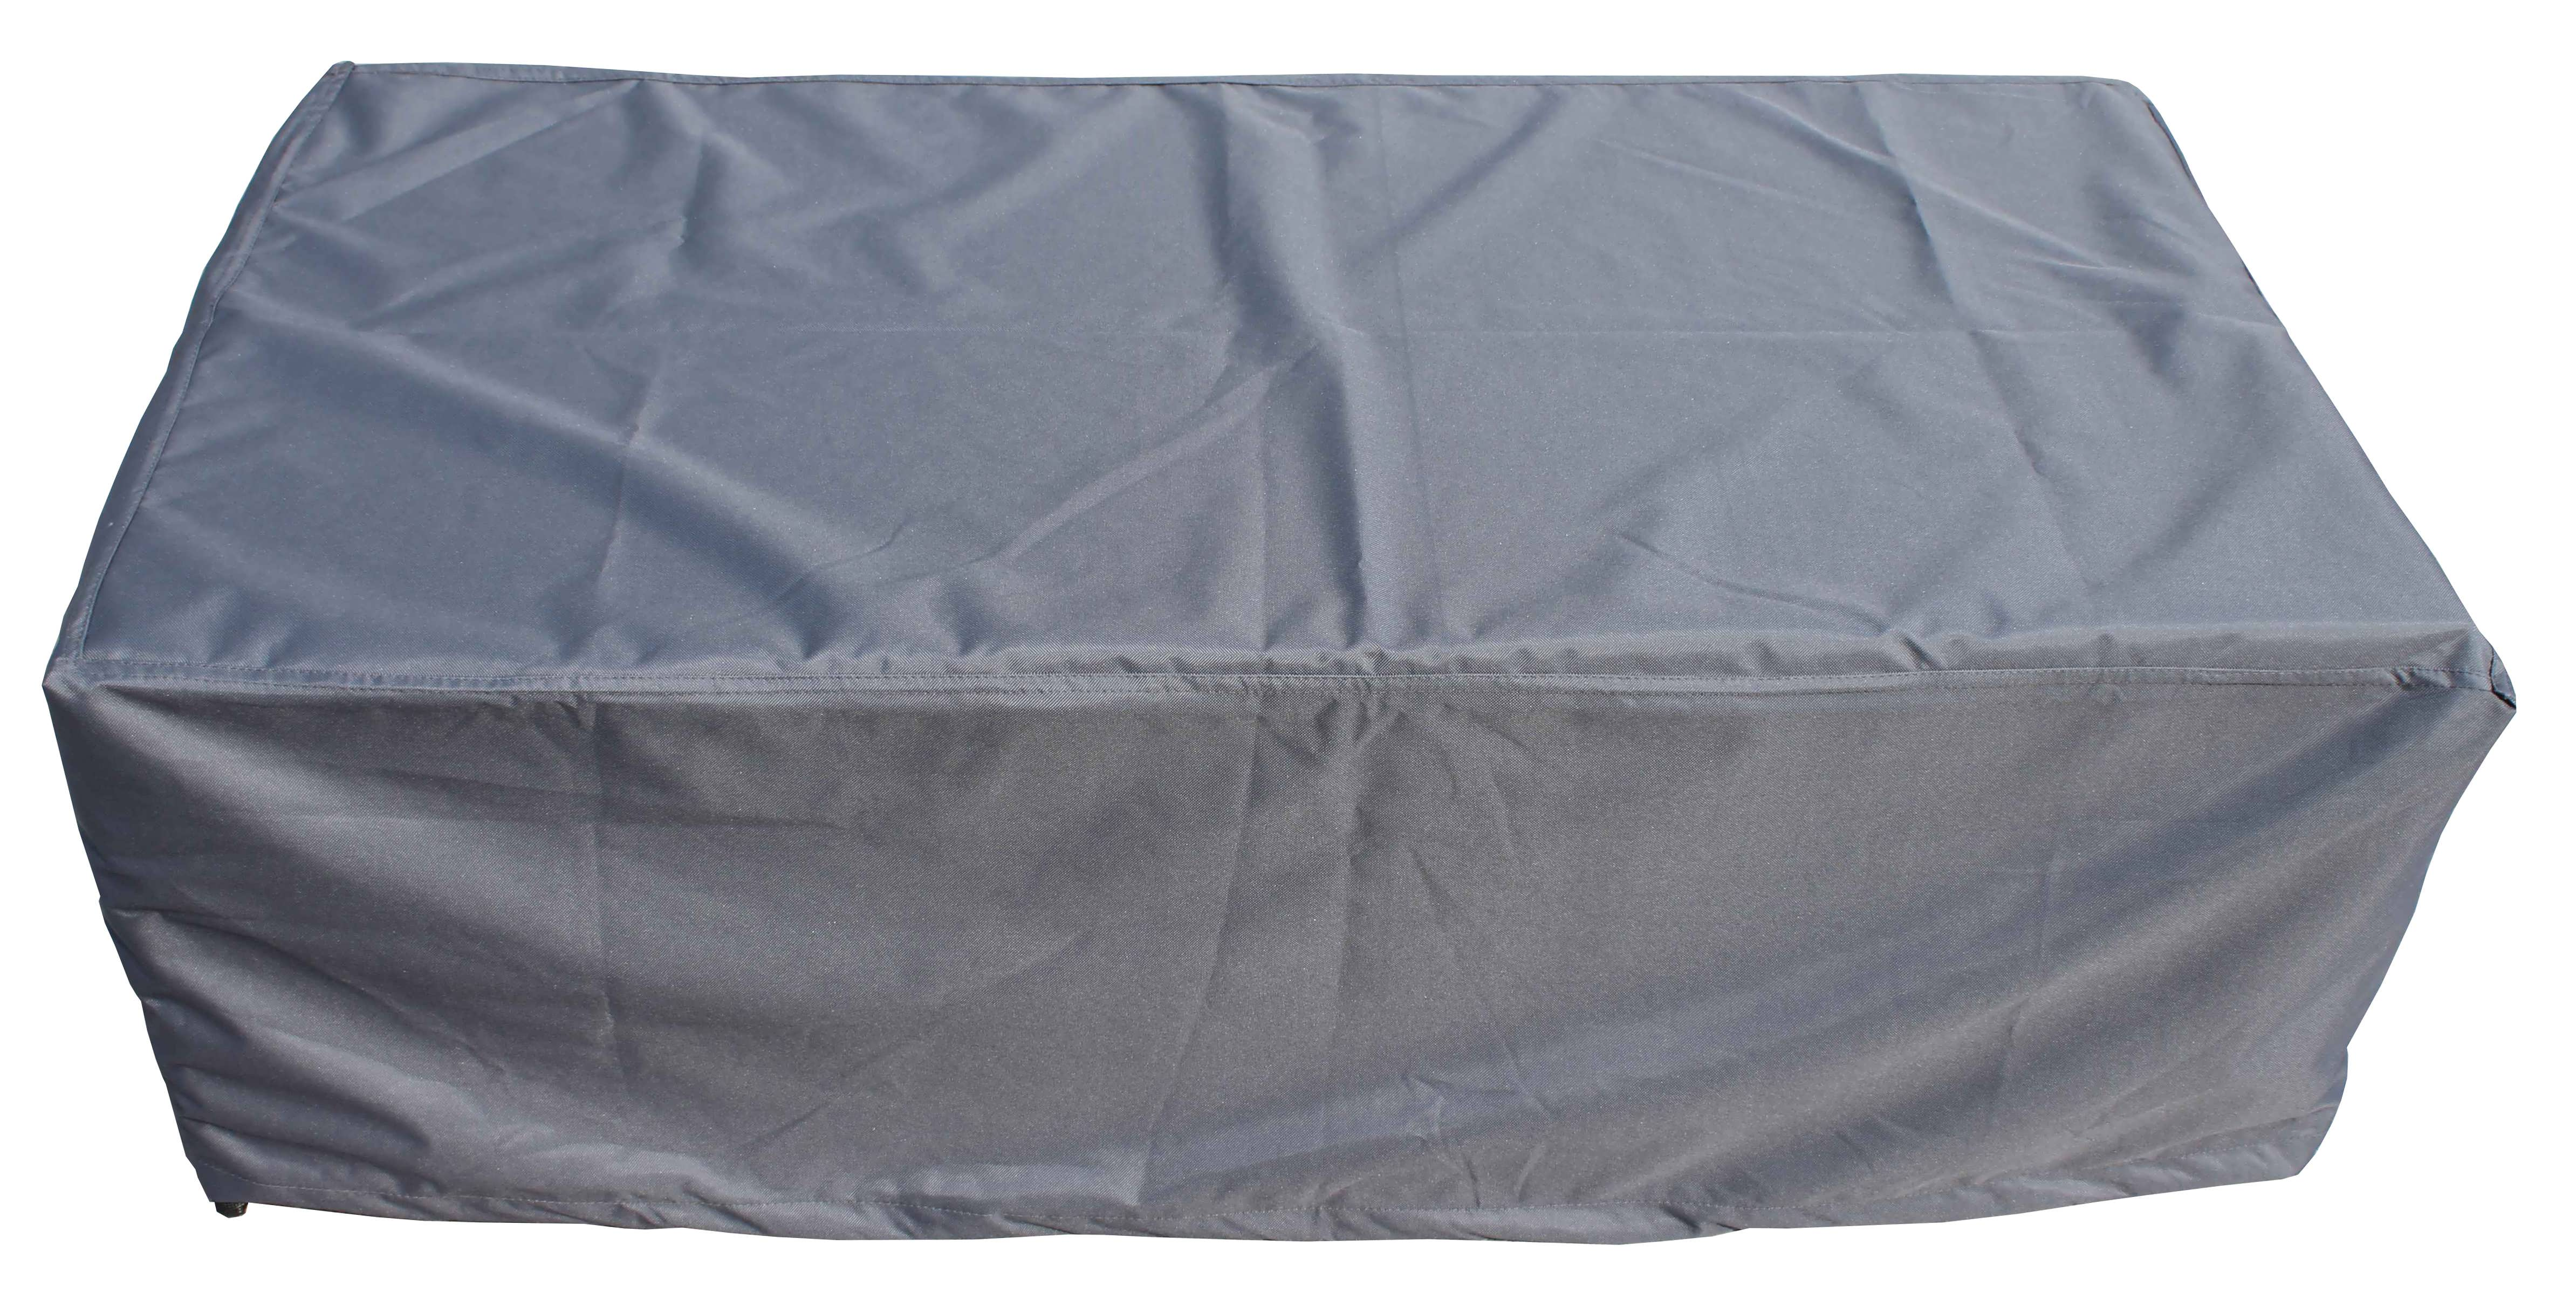 Charmant Garden Furniture Covers For Wicker Table Cover   Glendale, CA 91205